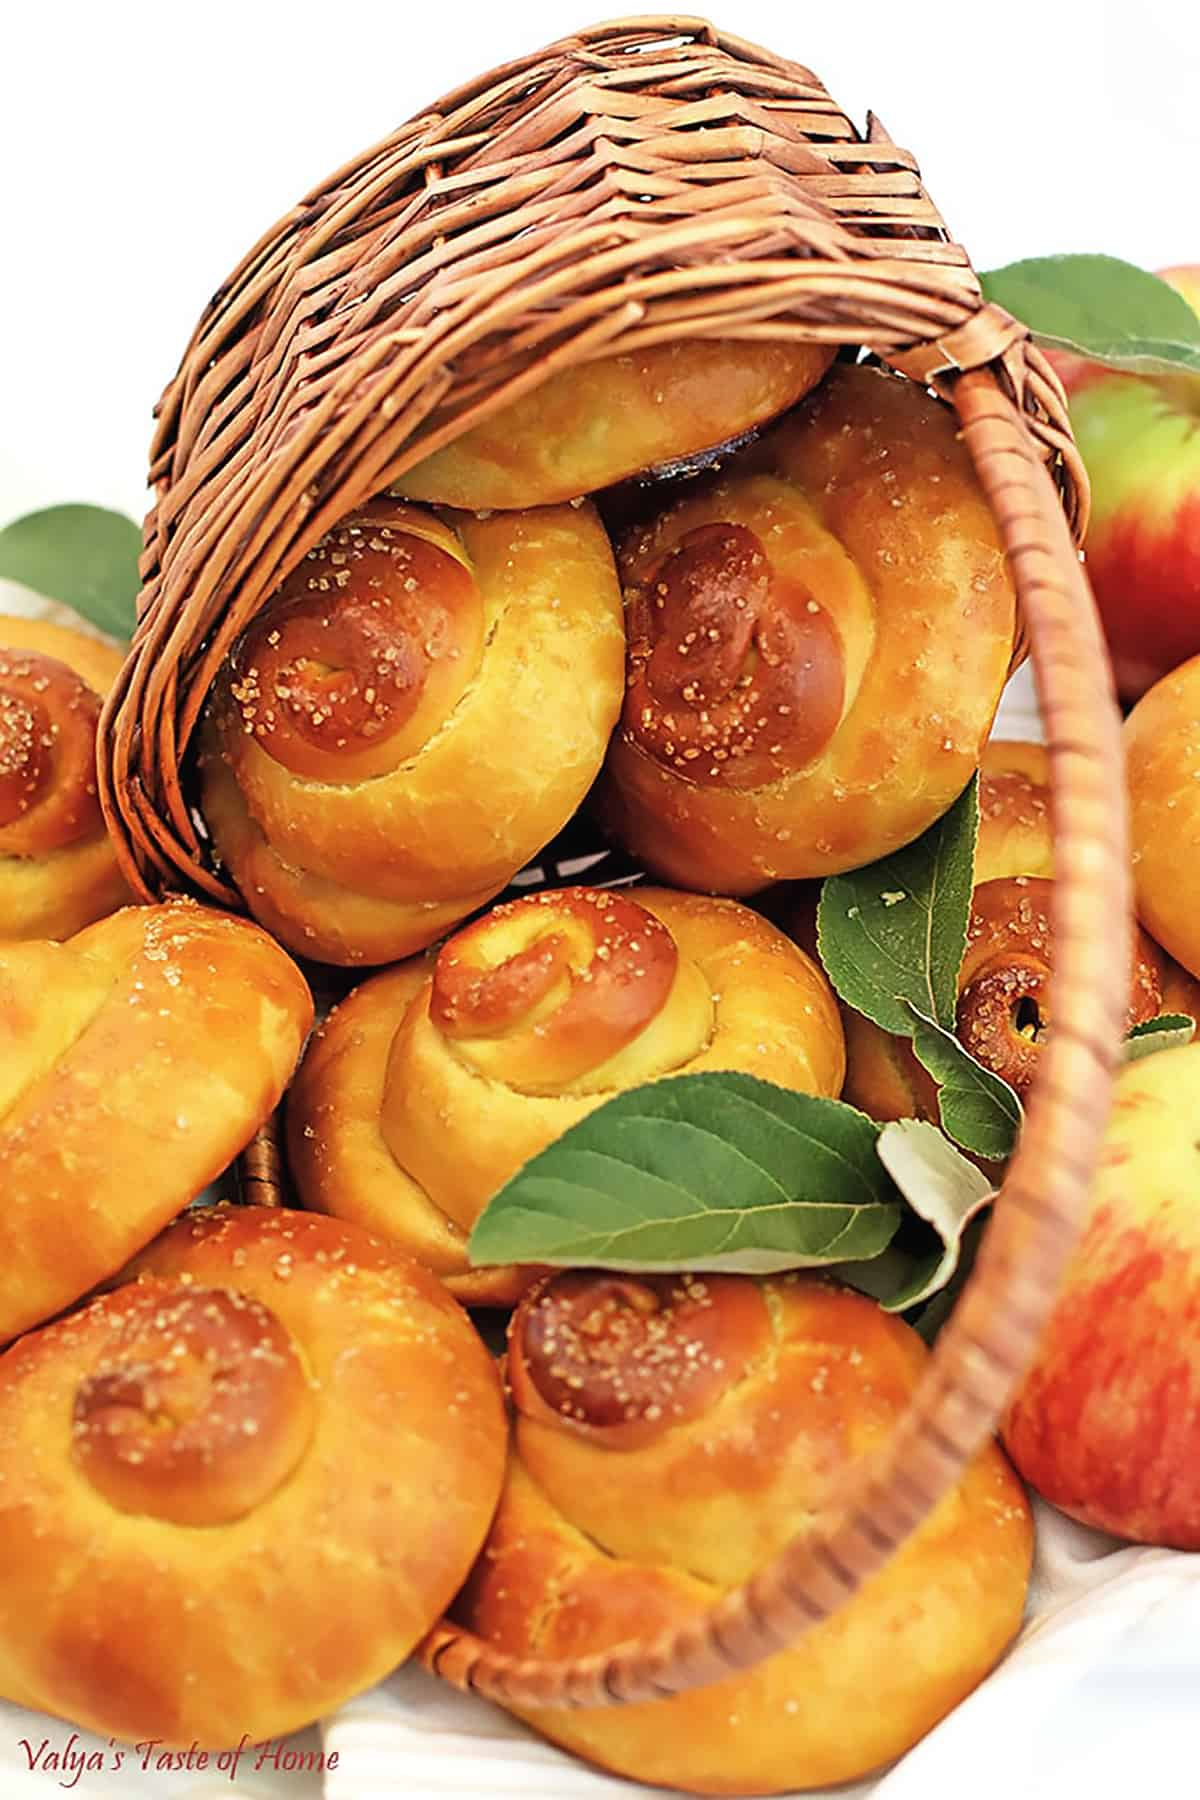 Ah, the sweet flavors of fall! These super-soft, Sweet Swirl Apple Buns are a wonderful comfort fall treat. The juicy grated apples make them incredibly moist, delicious, and irresistible! They look so beautiful and glossy after being brushed with the egg glaze and sprinkled with organic raw sugar. You just wanna eat them raw, like cookie dough! ;)